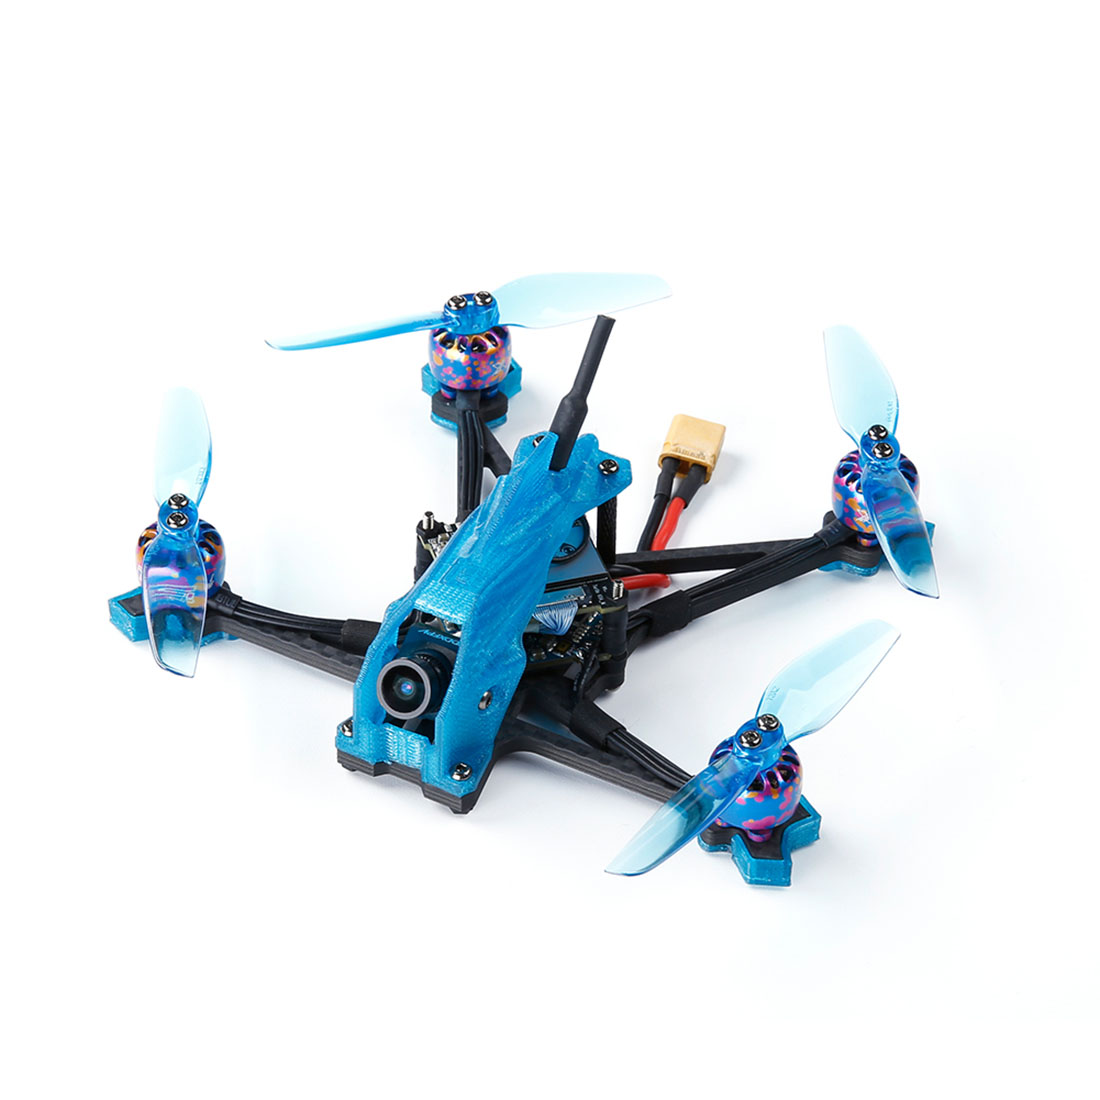 2019 New iFlight CinePick 120HD SucceX BWhoop F4 <font><b>1105</b></font> 4500KV <font><b>Brushless</b></font> <font><b>Motor</b></font> 4S Baby Turtle HD Camera For RC FPV Racing Drone image